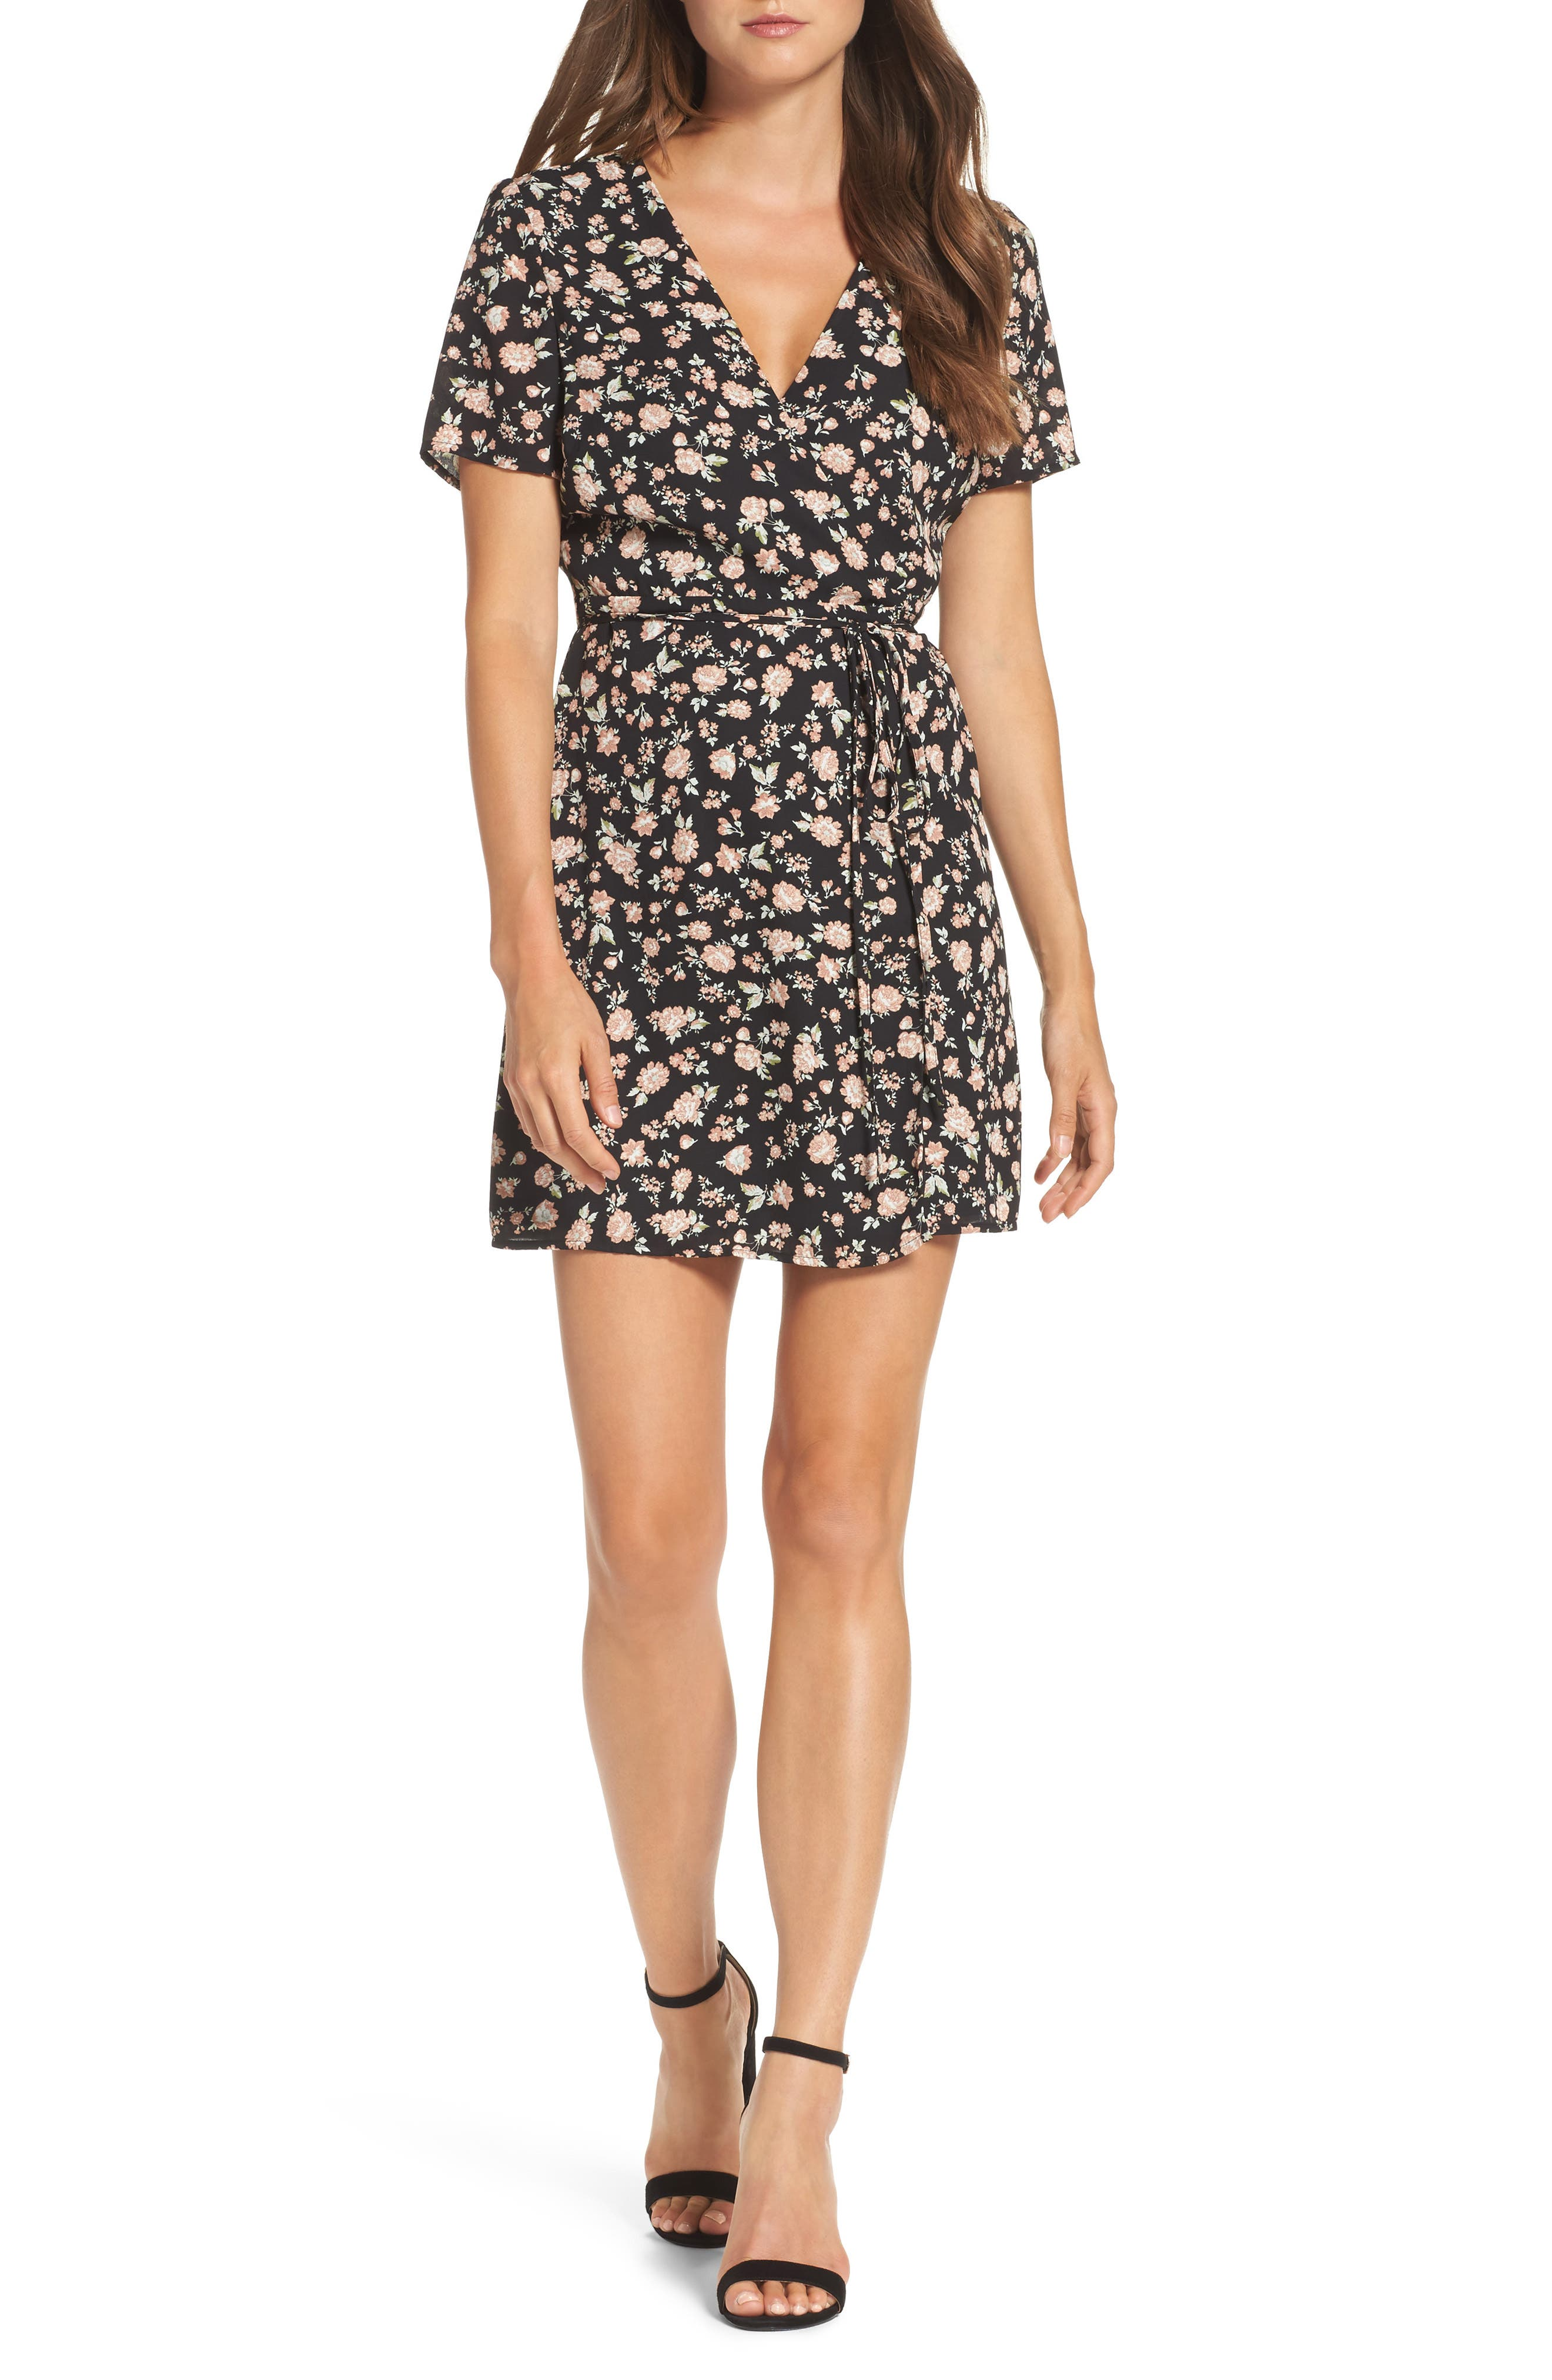 Main Image - Bardot Floral Wrap Dress